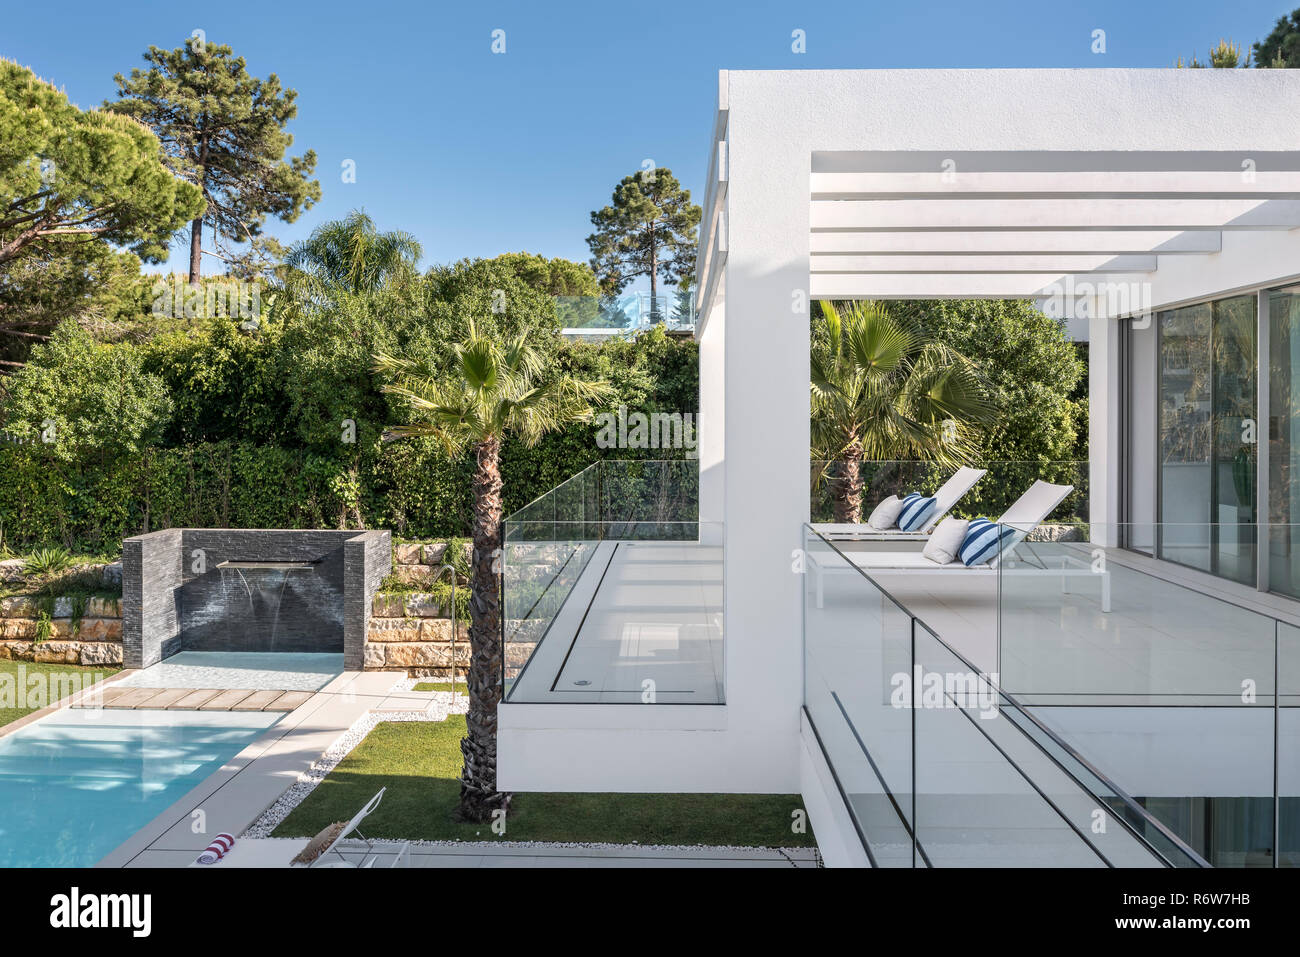 build a balcony Lap Pool And Lawn Set In Grounds Of New Build Villa Quinta